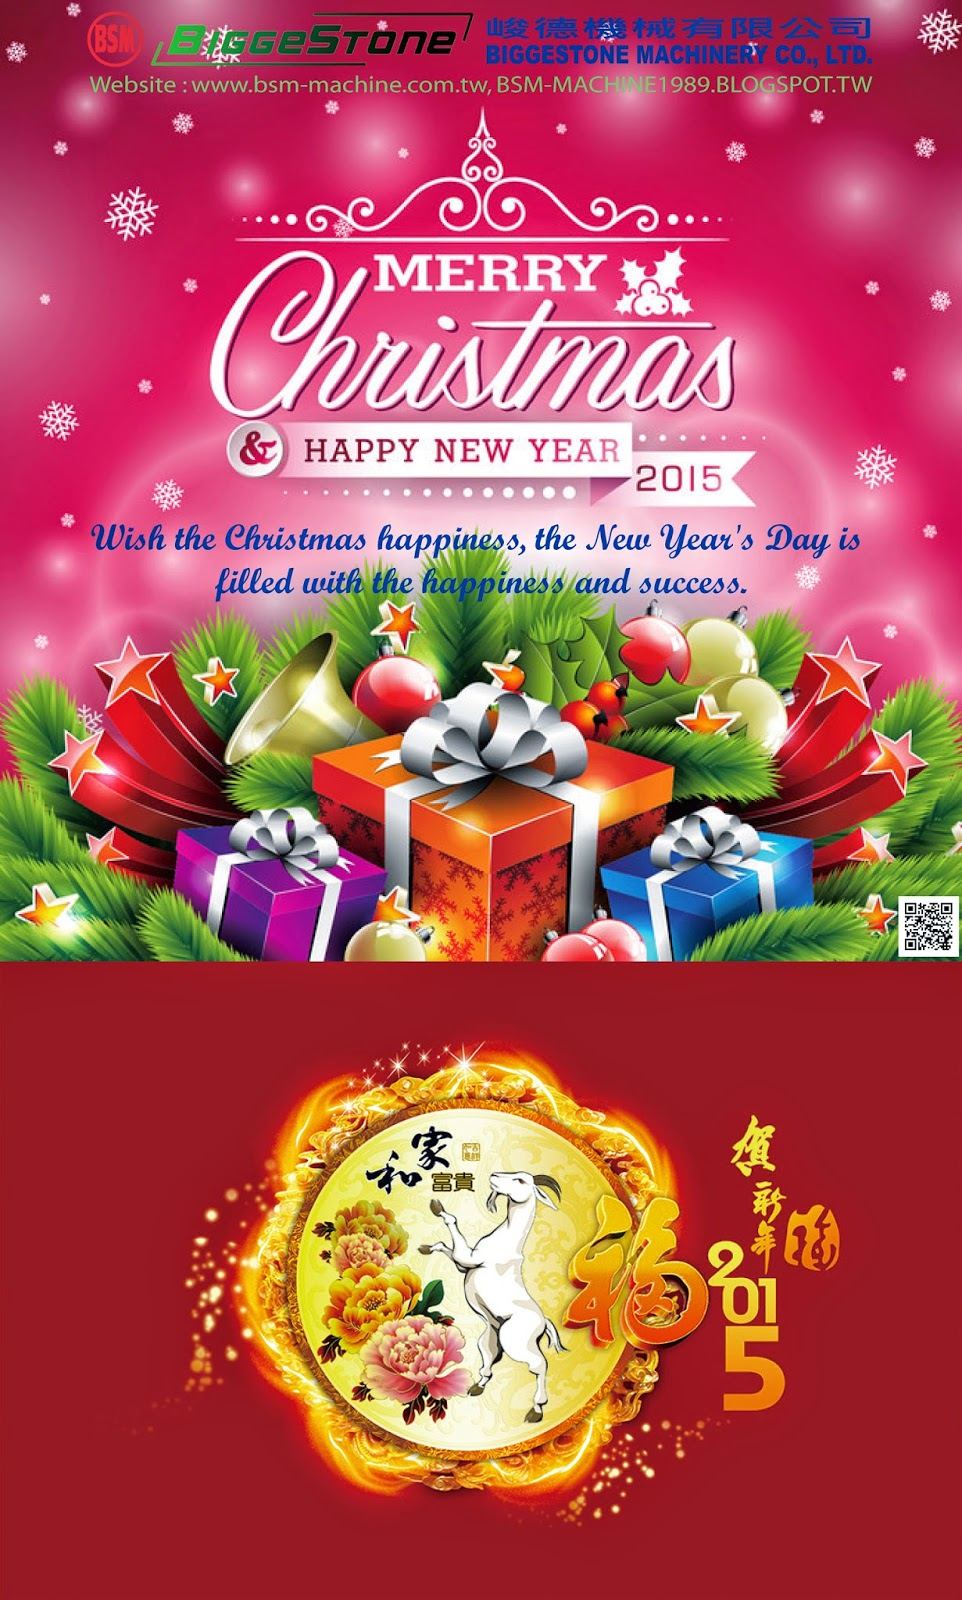 BSM-BIGGESTONE Machinery + Merry Christmas & Happy new year 2015‏